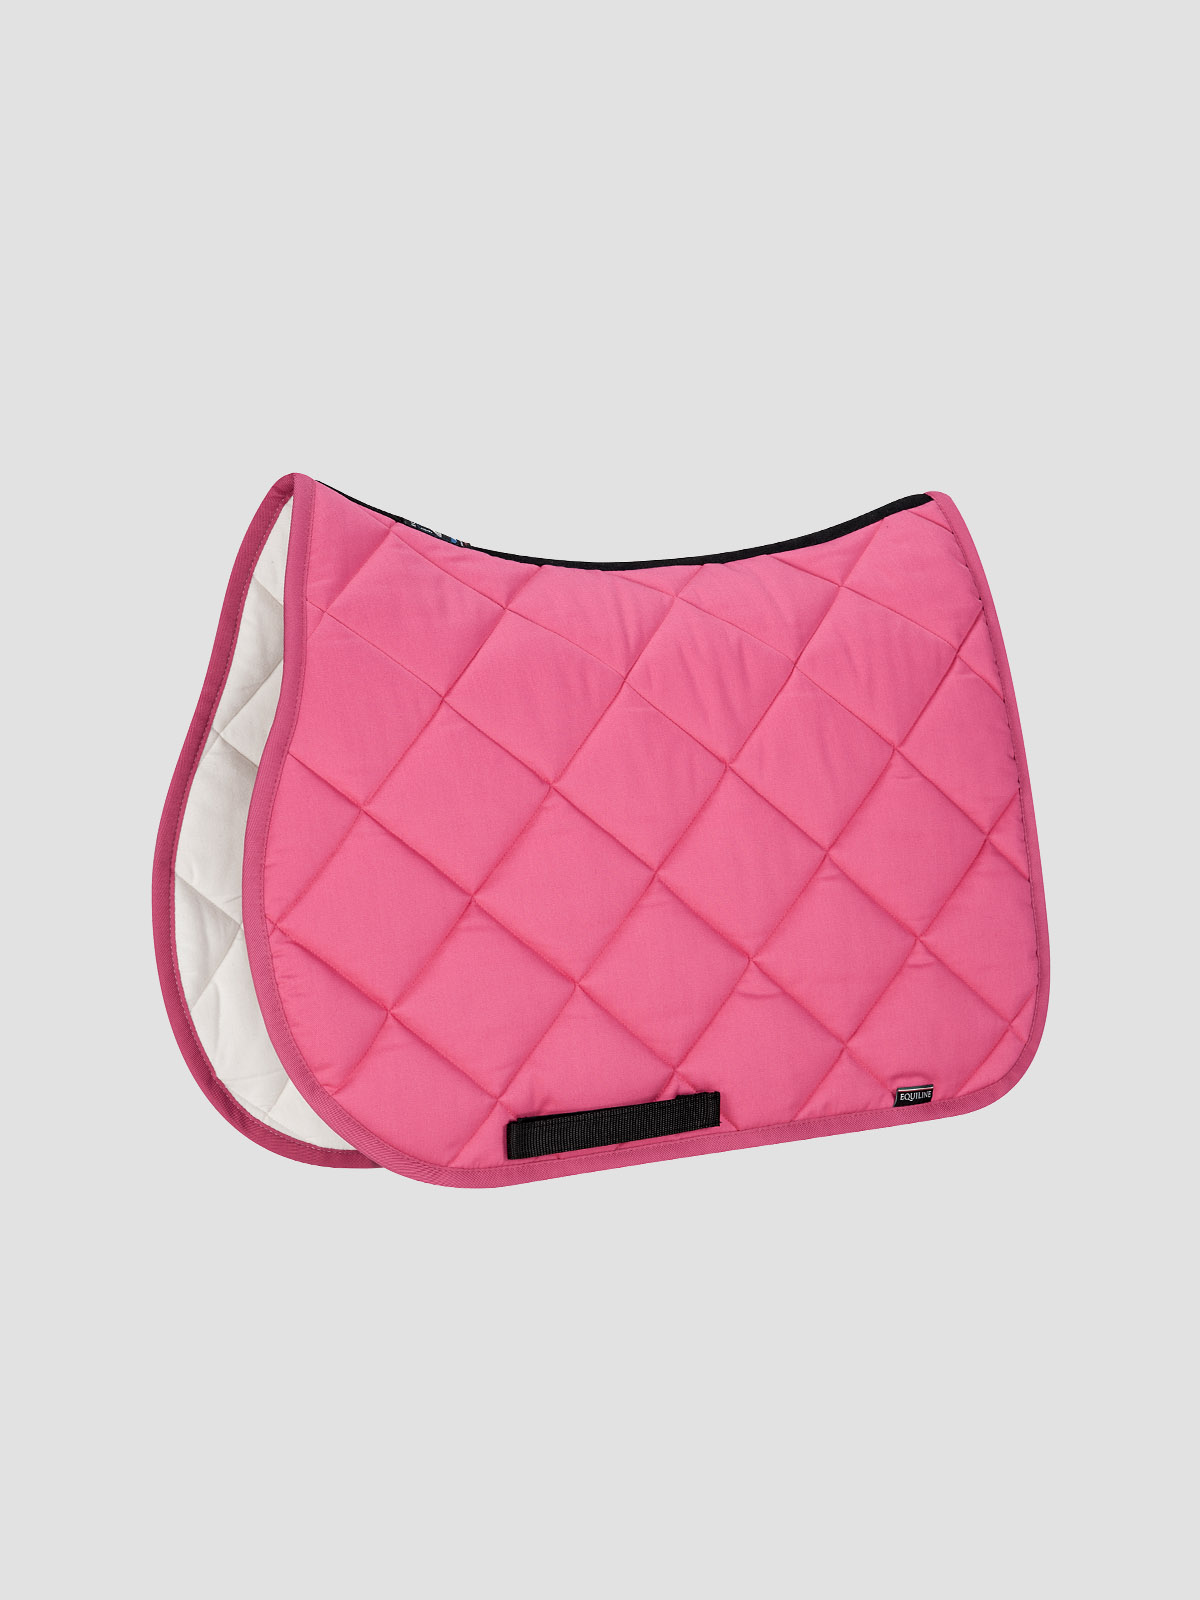 ROMBO - Rombo Saddle Pad 8